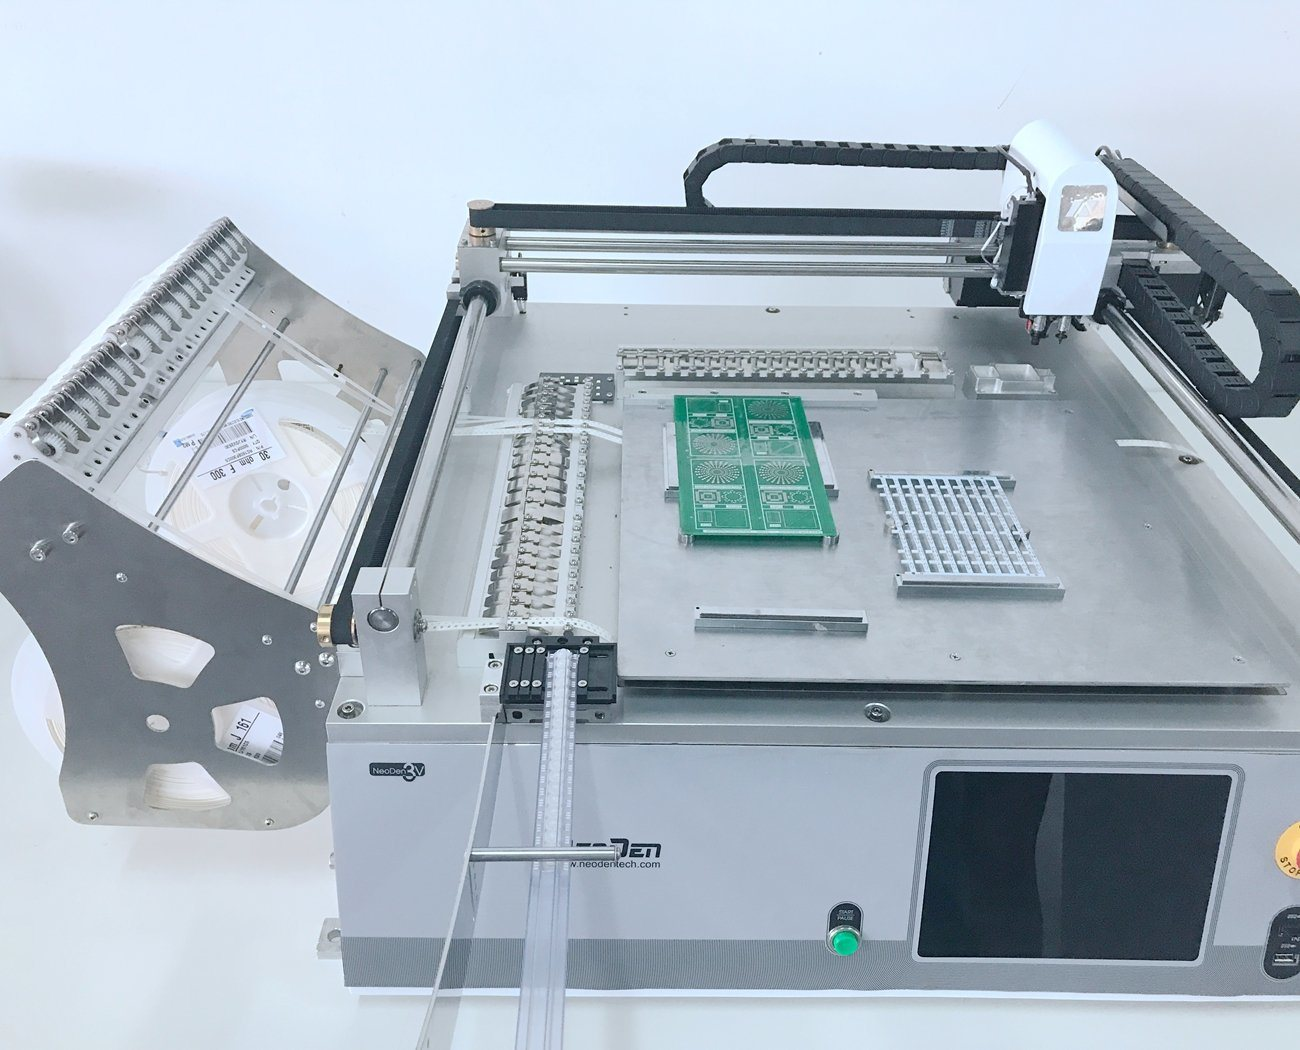 Wholesale Smd Assembly Buy Reliable From Smt Pcb Odm Oem Printed Circuit Board Service Nepcon Exhibition Popular Neoden3v Machine For 0402 5050 3528